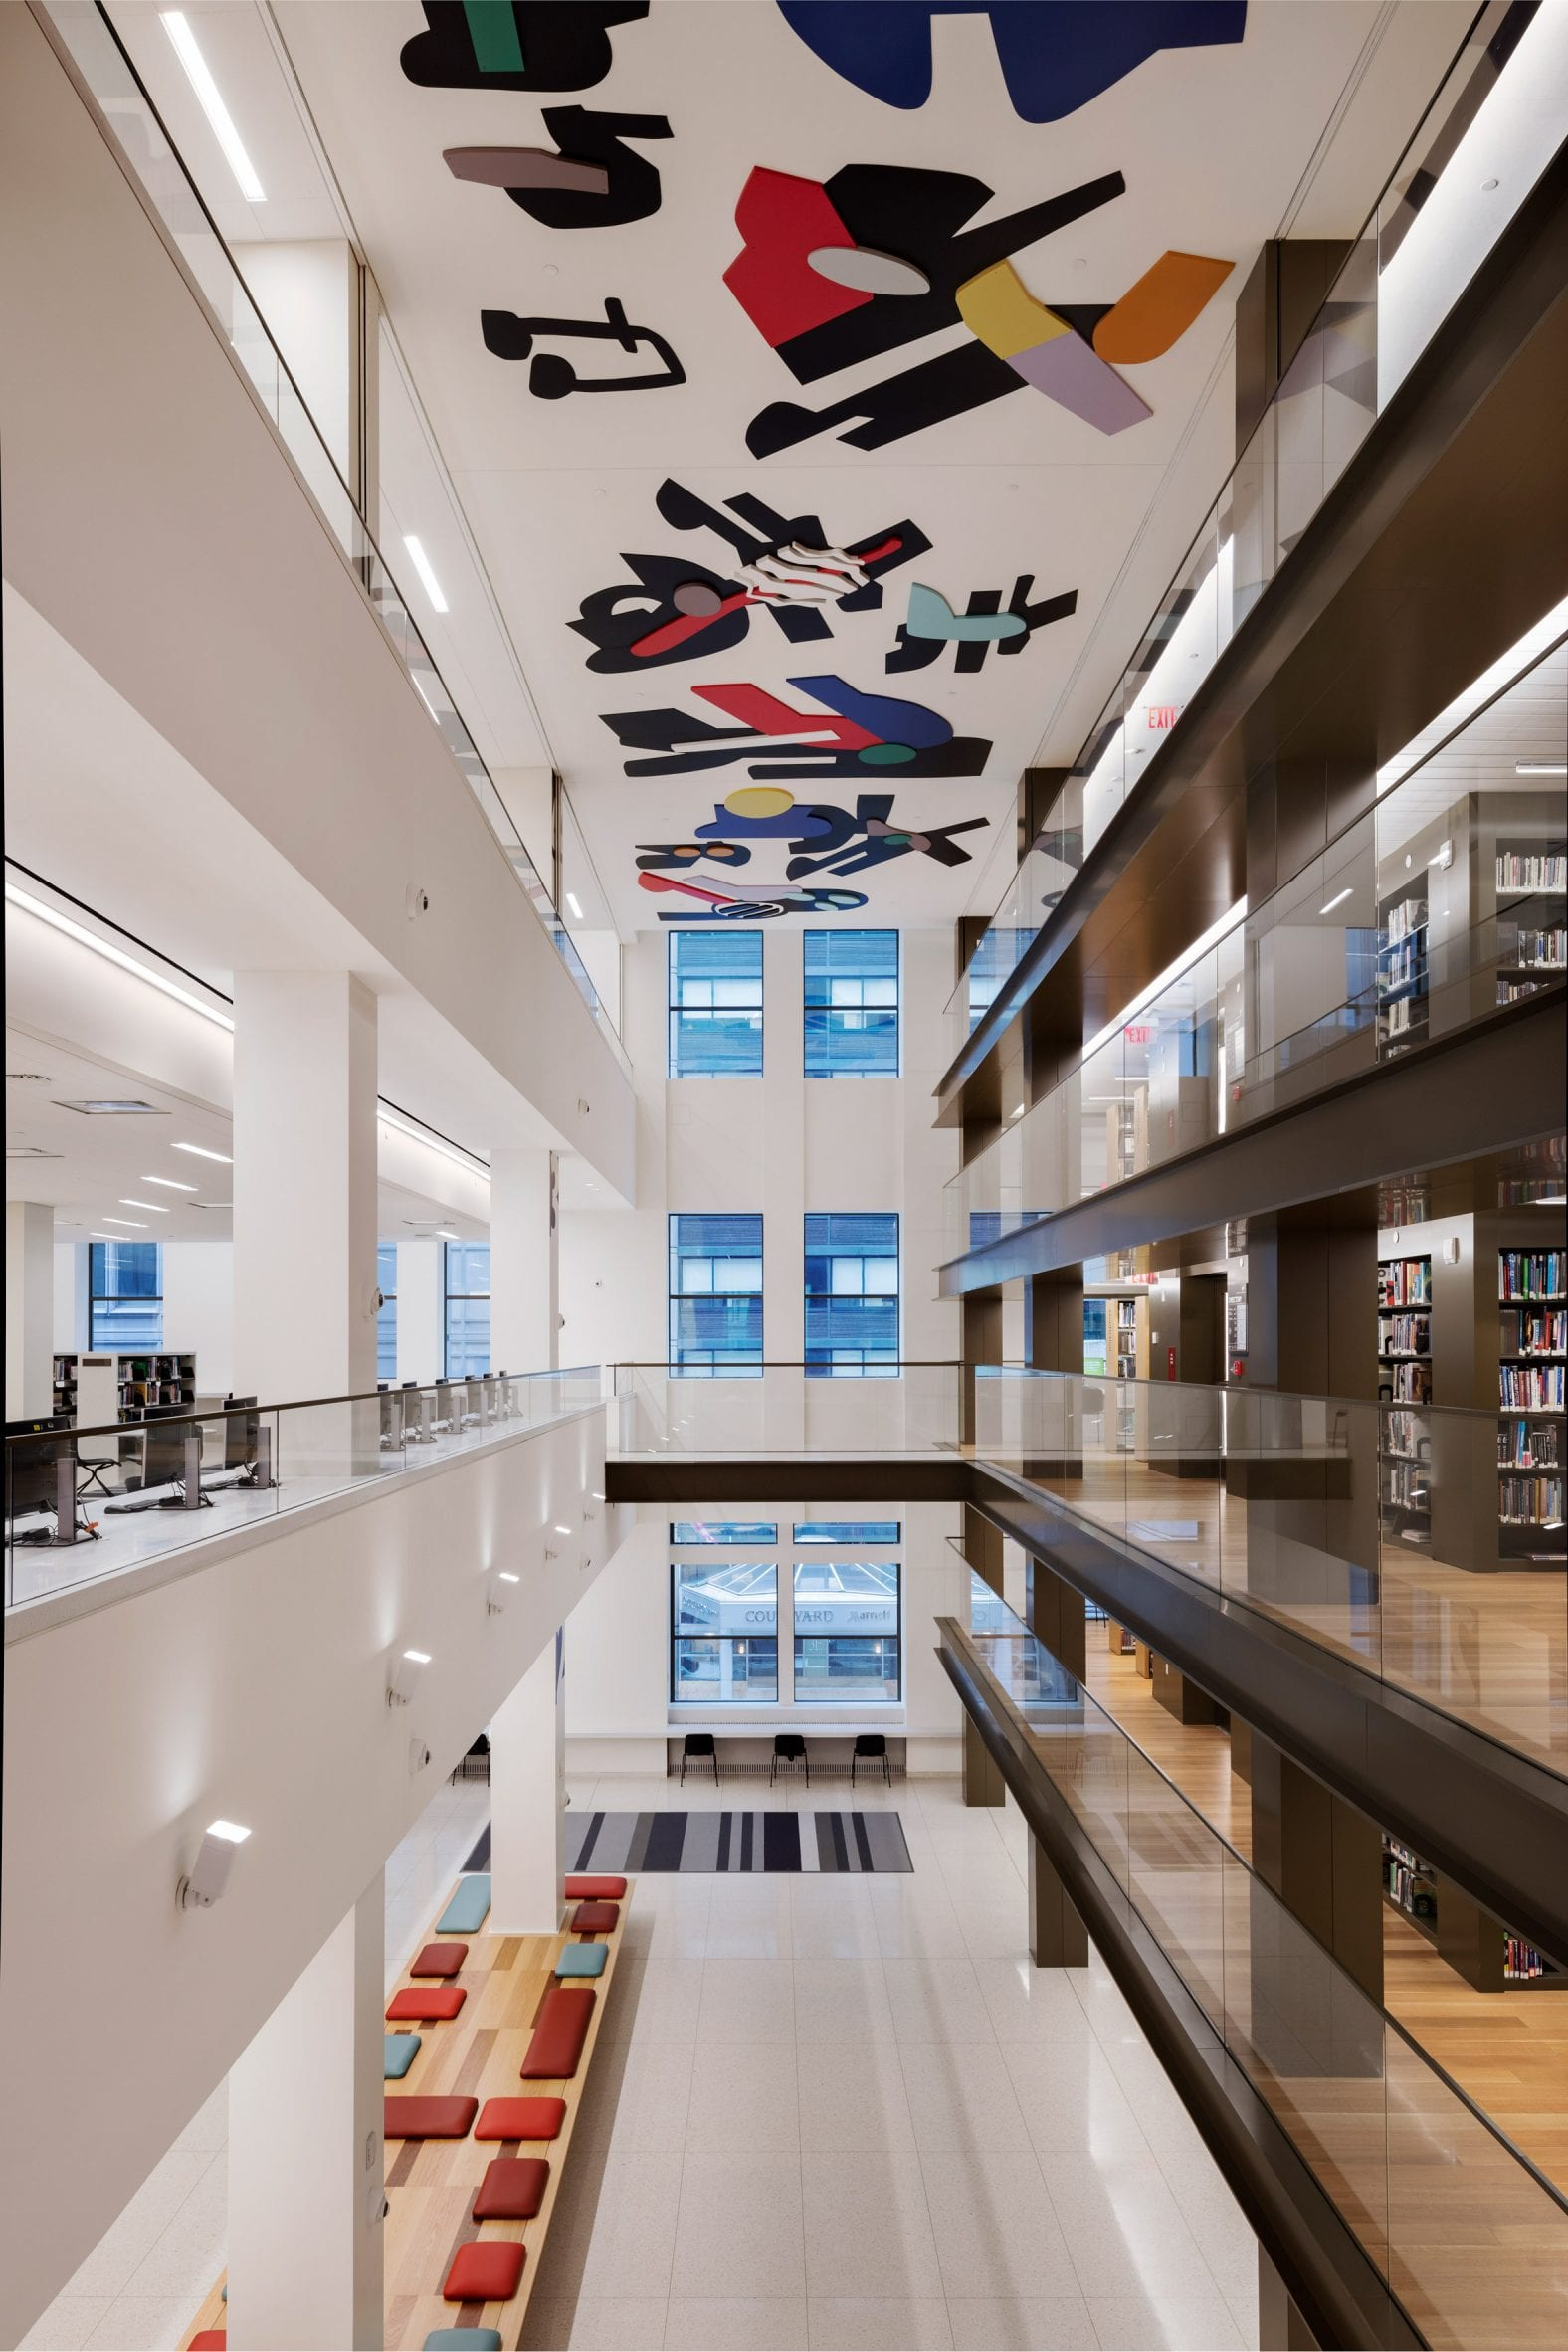 Ceiling art in a three-storey atrium in the Stavros Niarchos Foundation Library